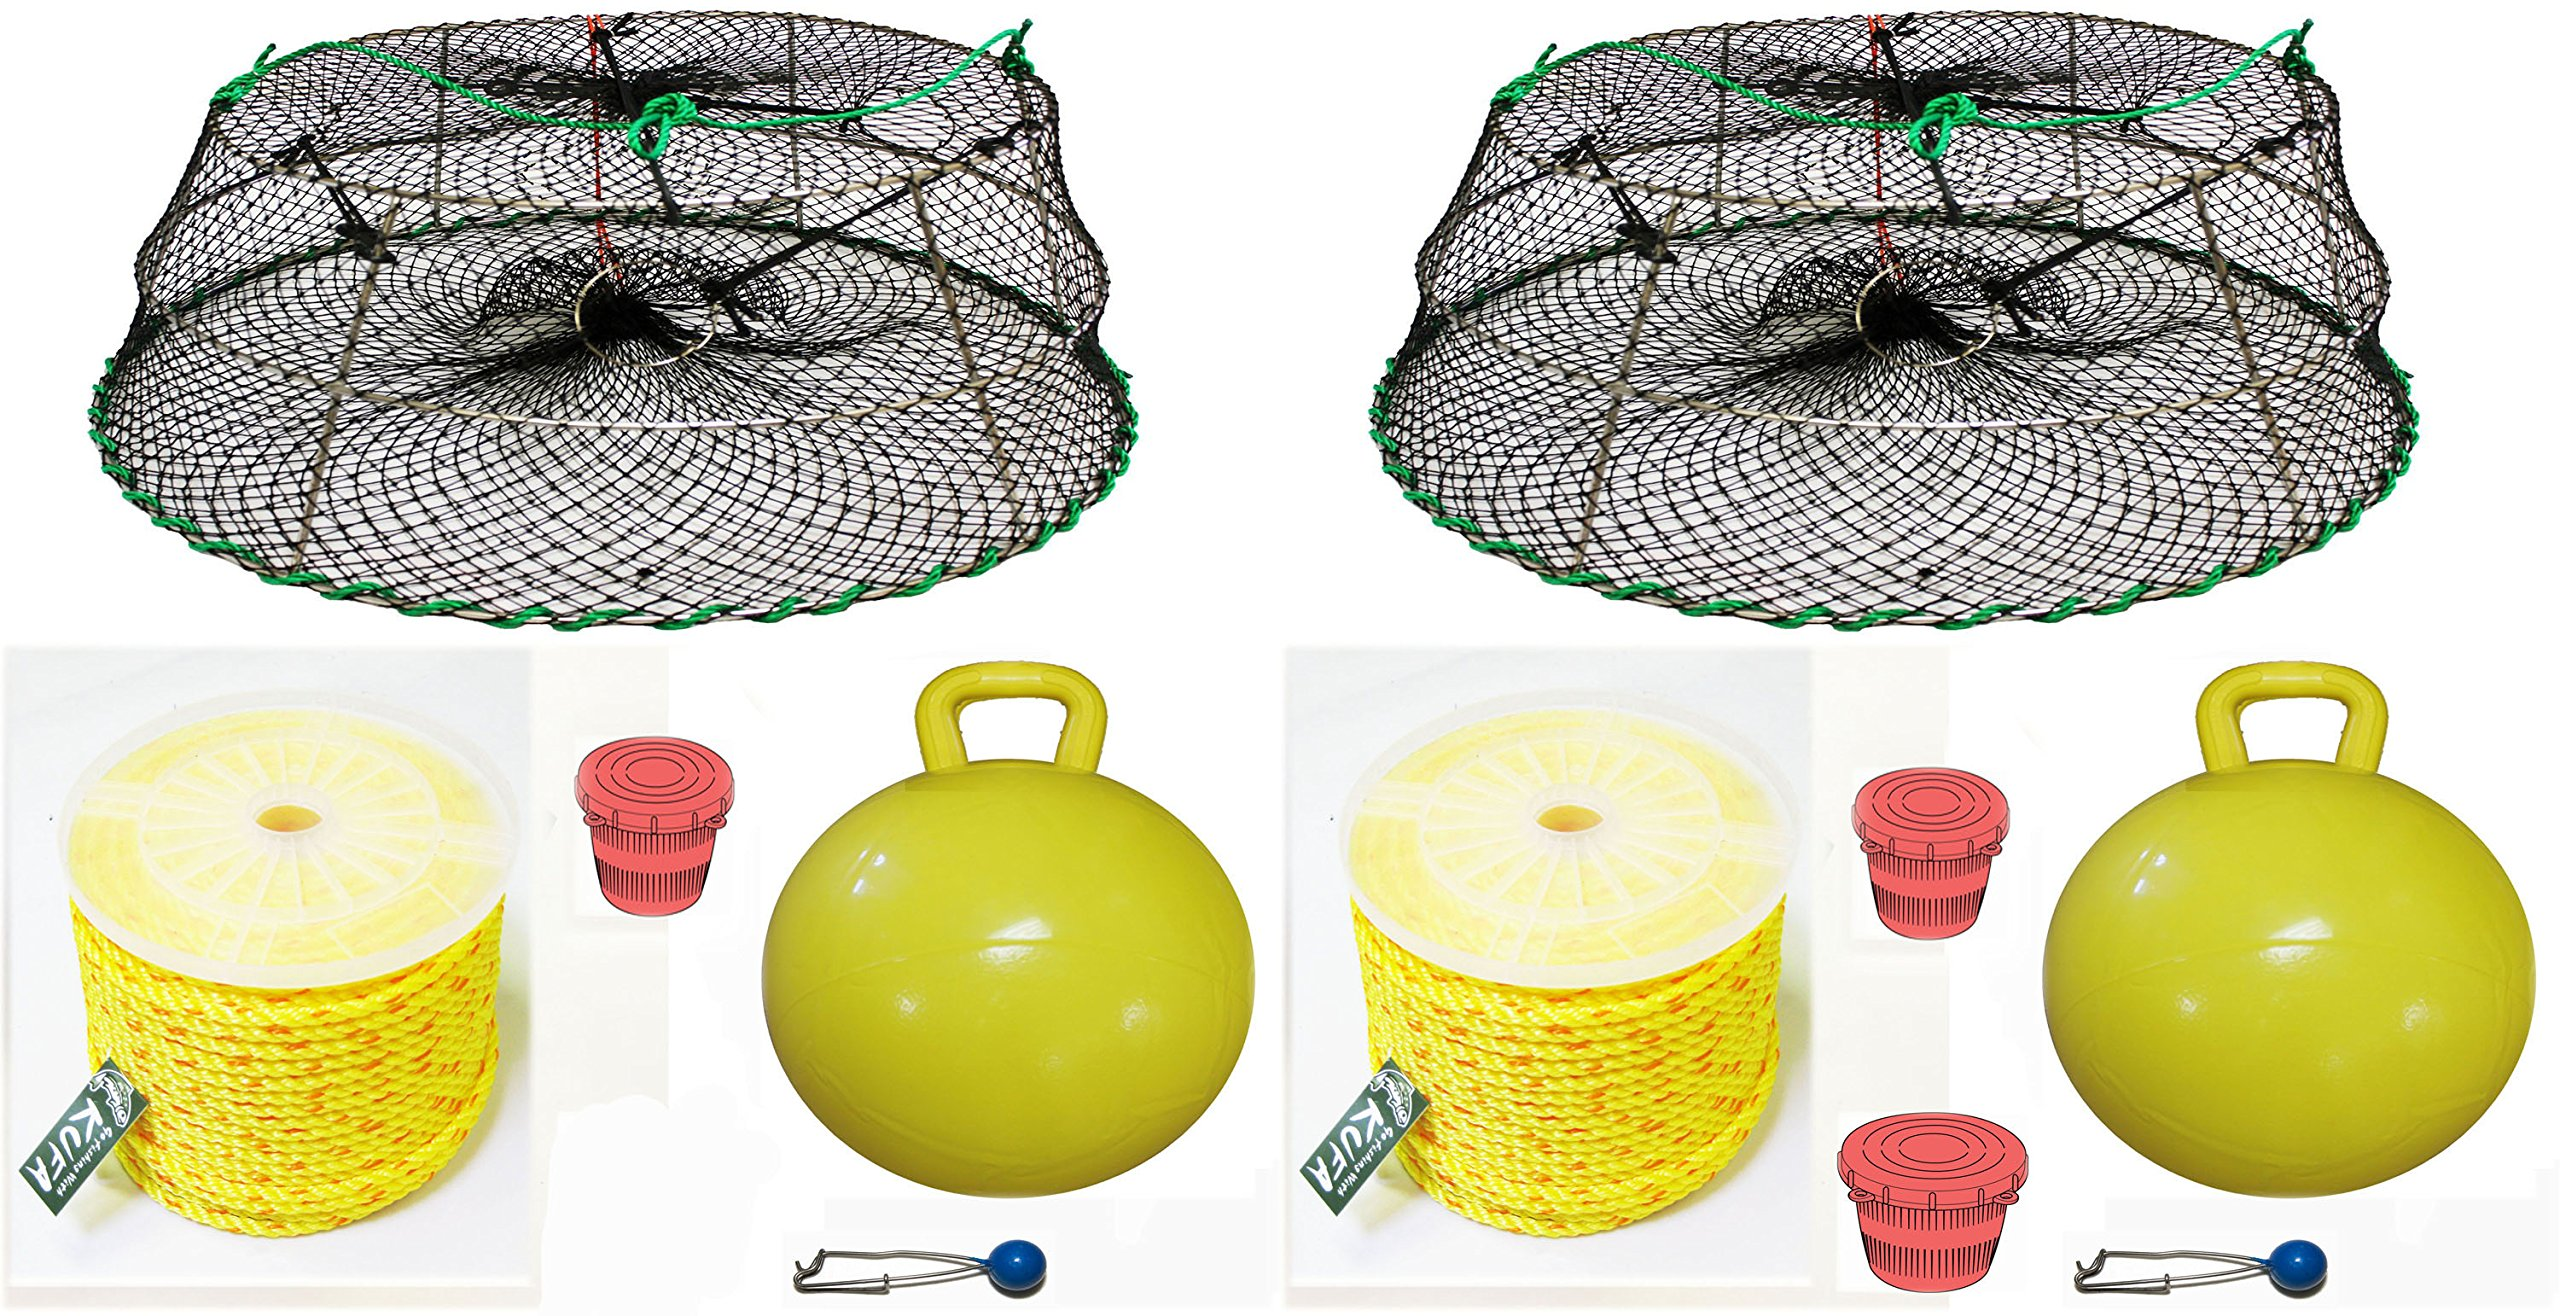 2-Pack of KUFA Sports Tower Style Prawn trap with 400' rope, Yellow float and Vented Bait Jar combo (CT77+PAP5)X2 by KUFA Sports